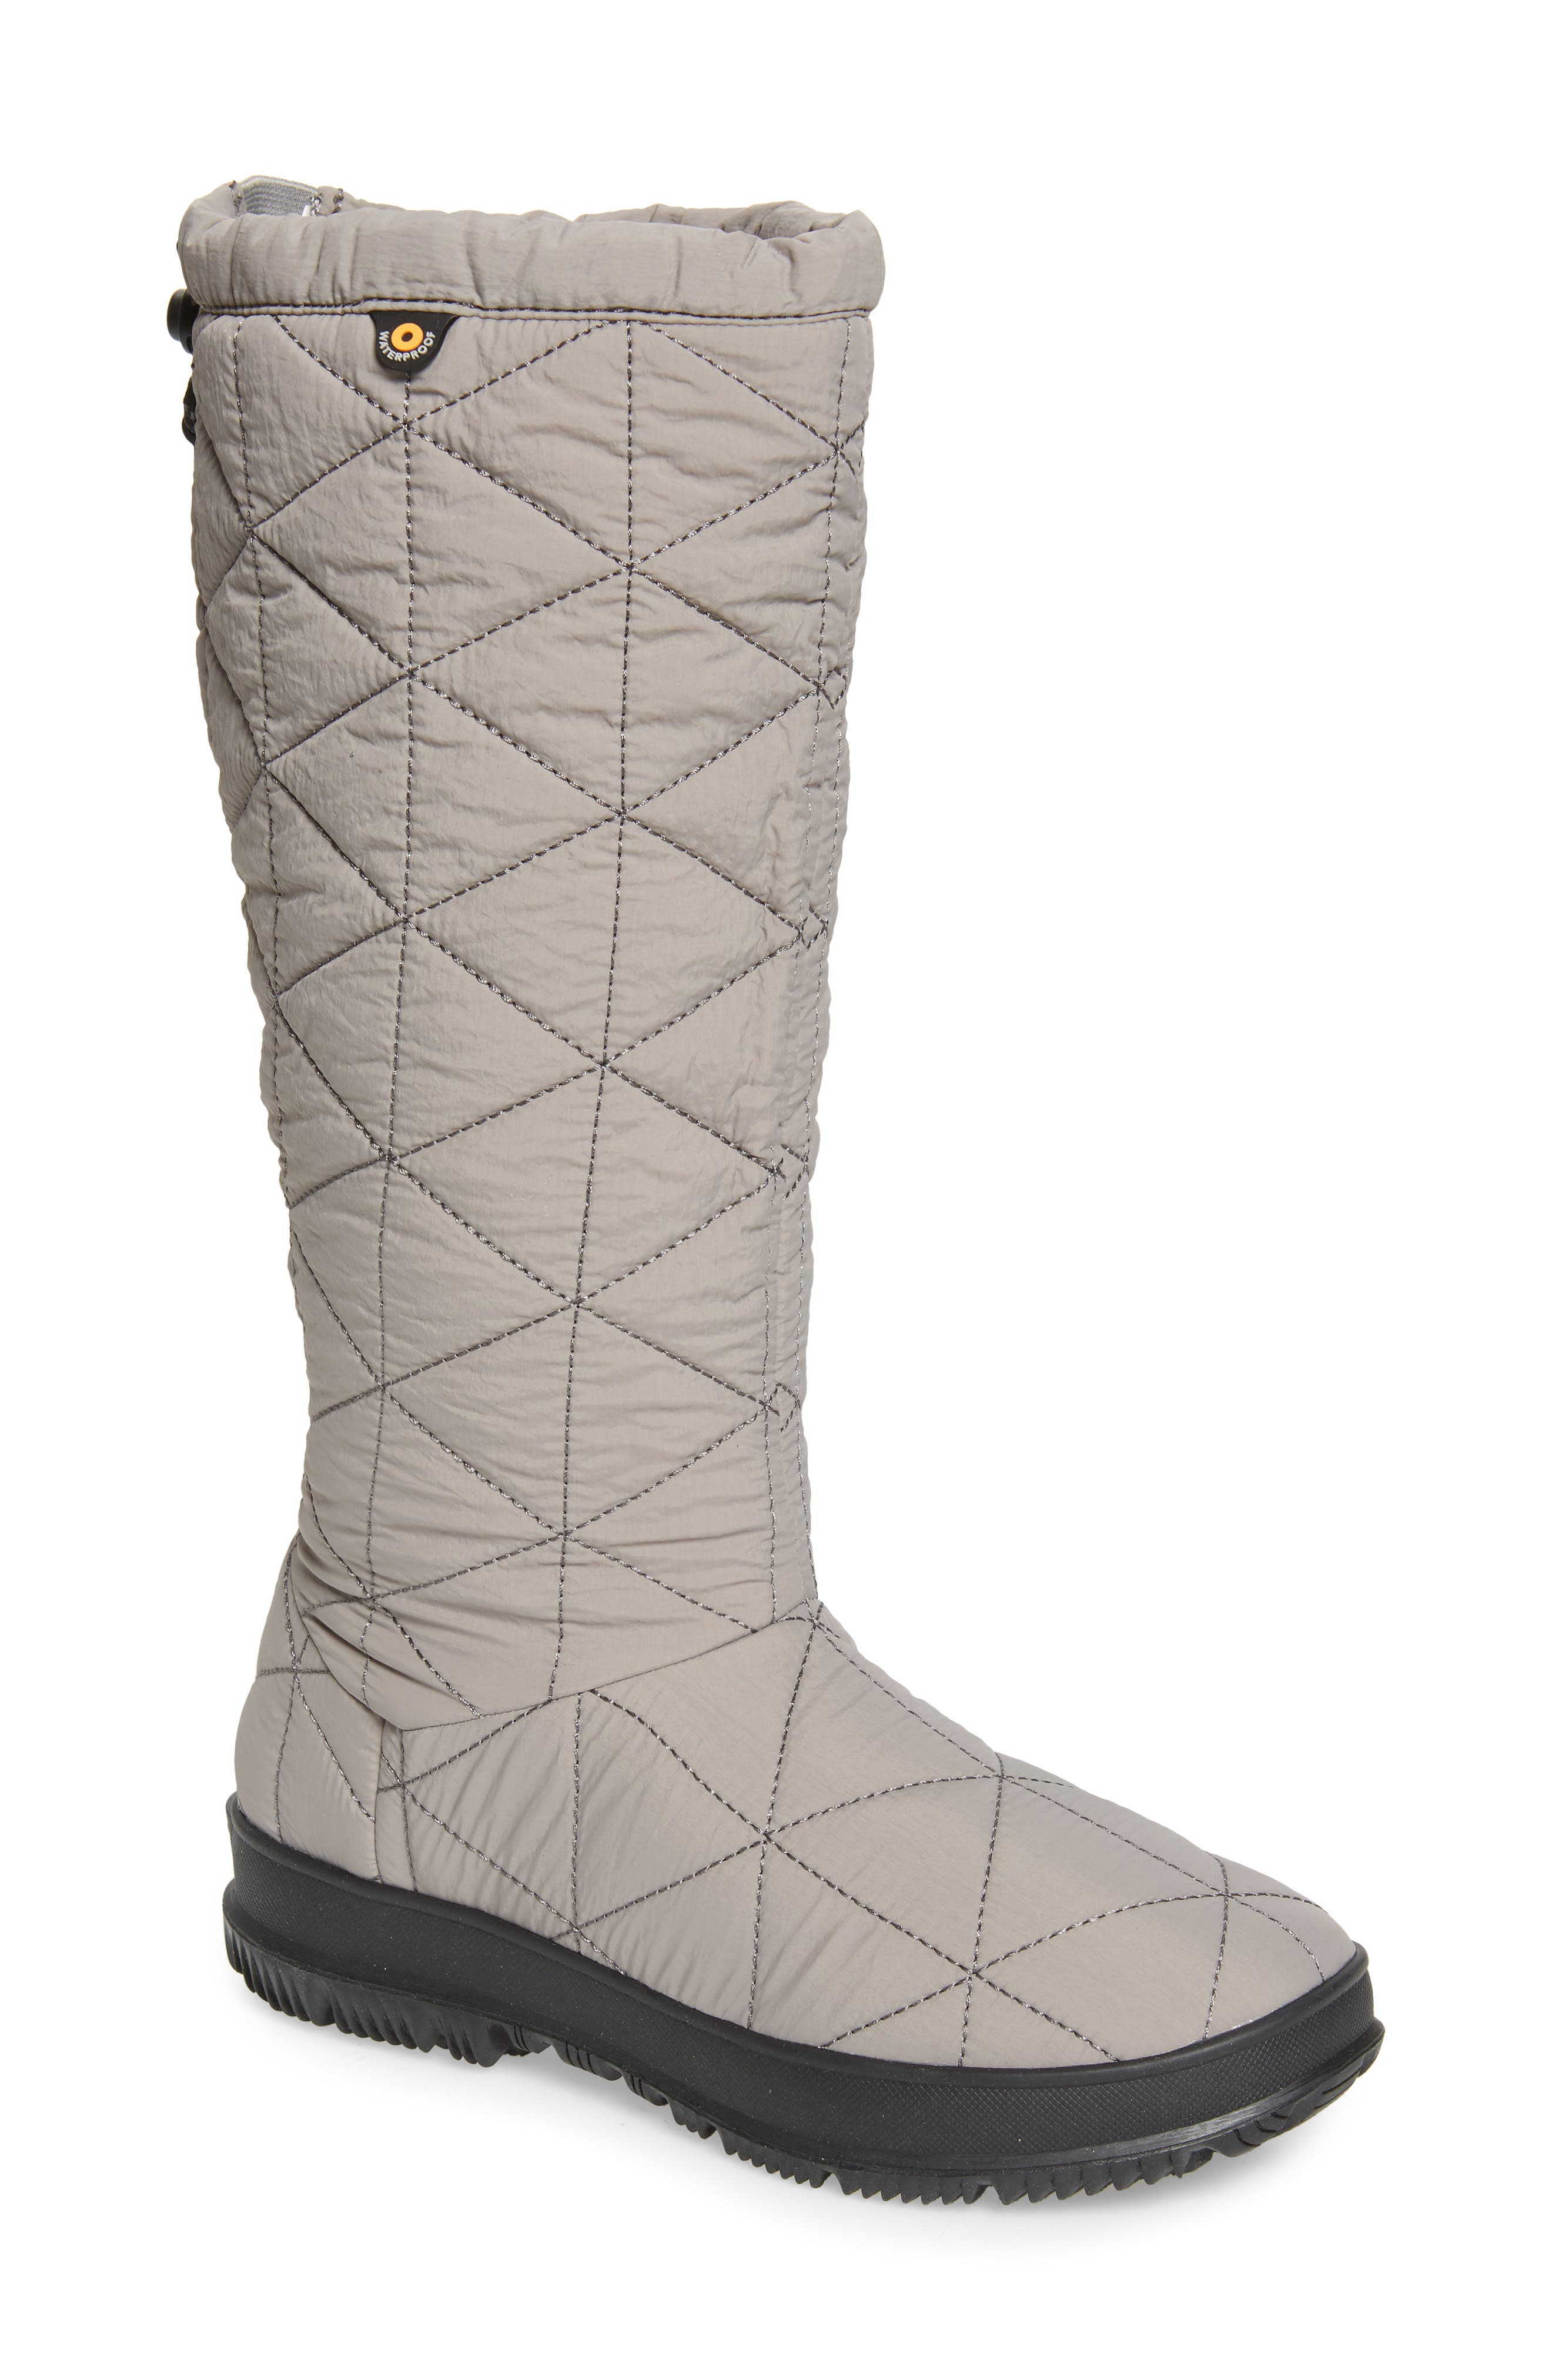 Snowday Tall Waterproof Quilted Snow Boot